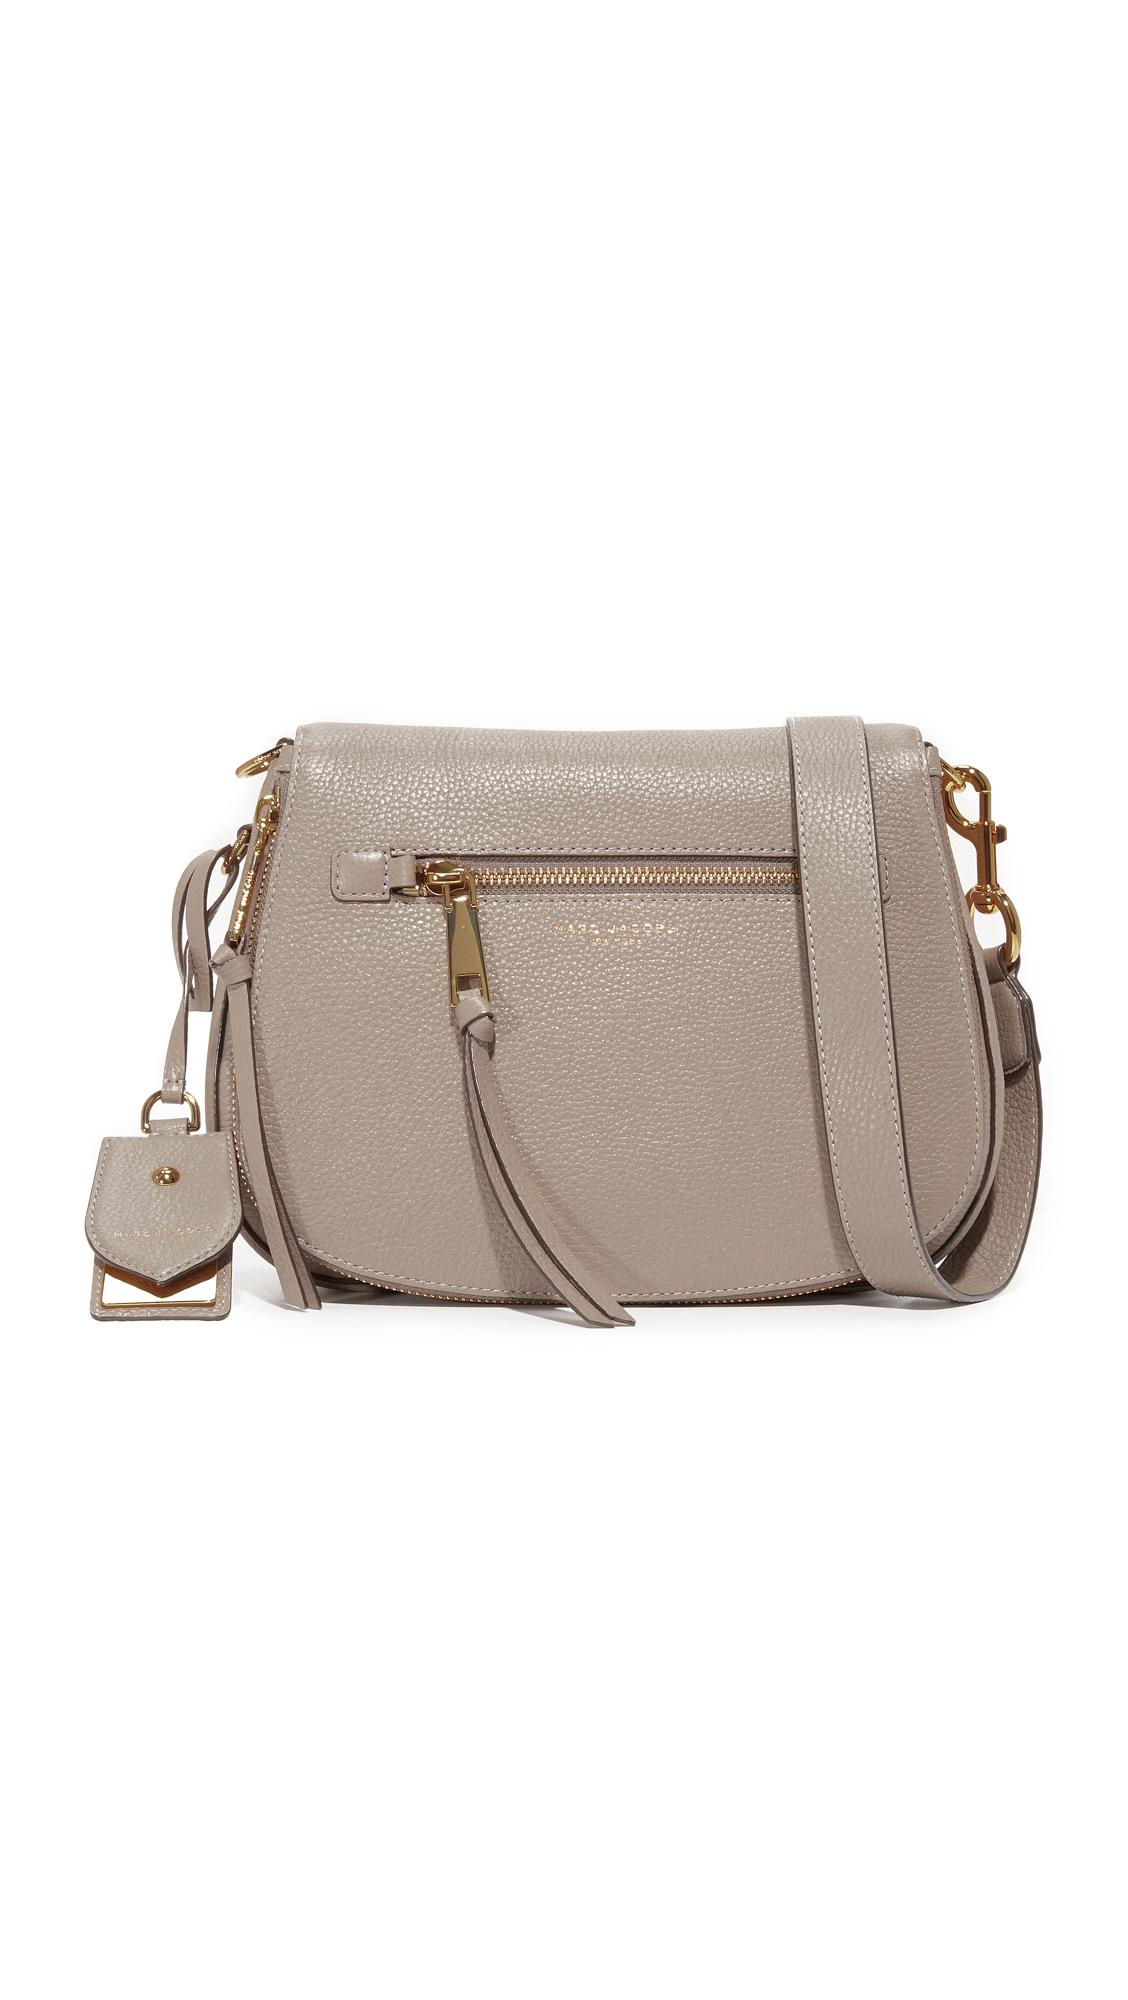 a9c2628e06d9 Lyst - Marc Jacobs Recruit Saddle Bag in Brown